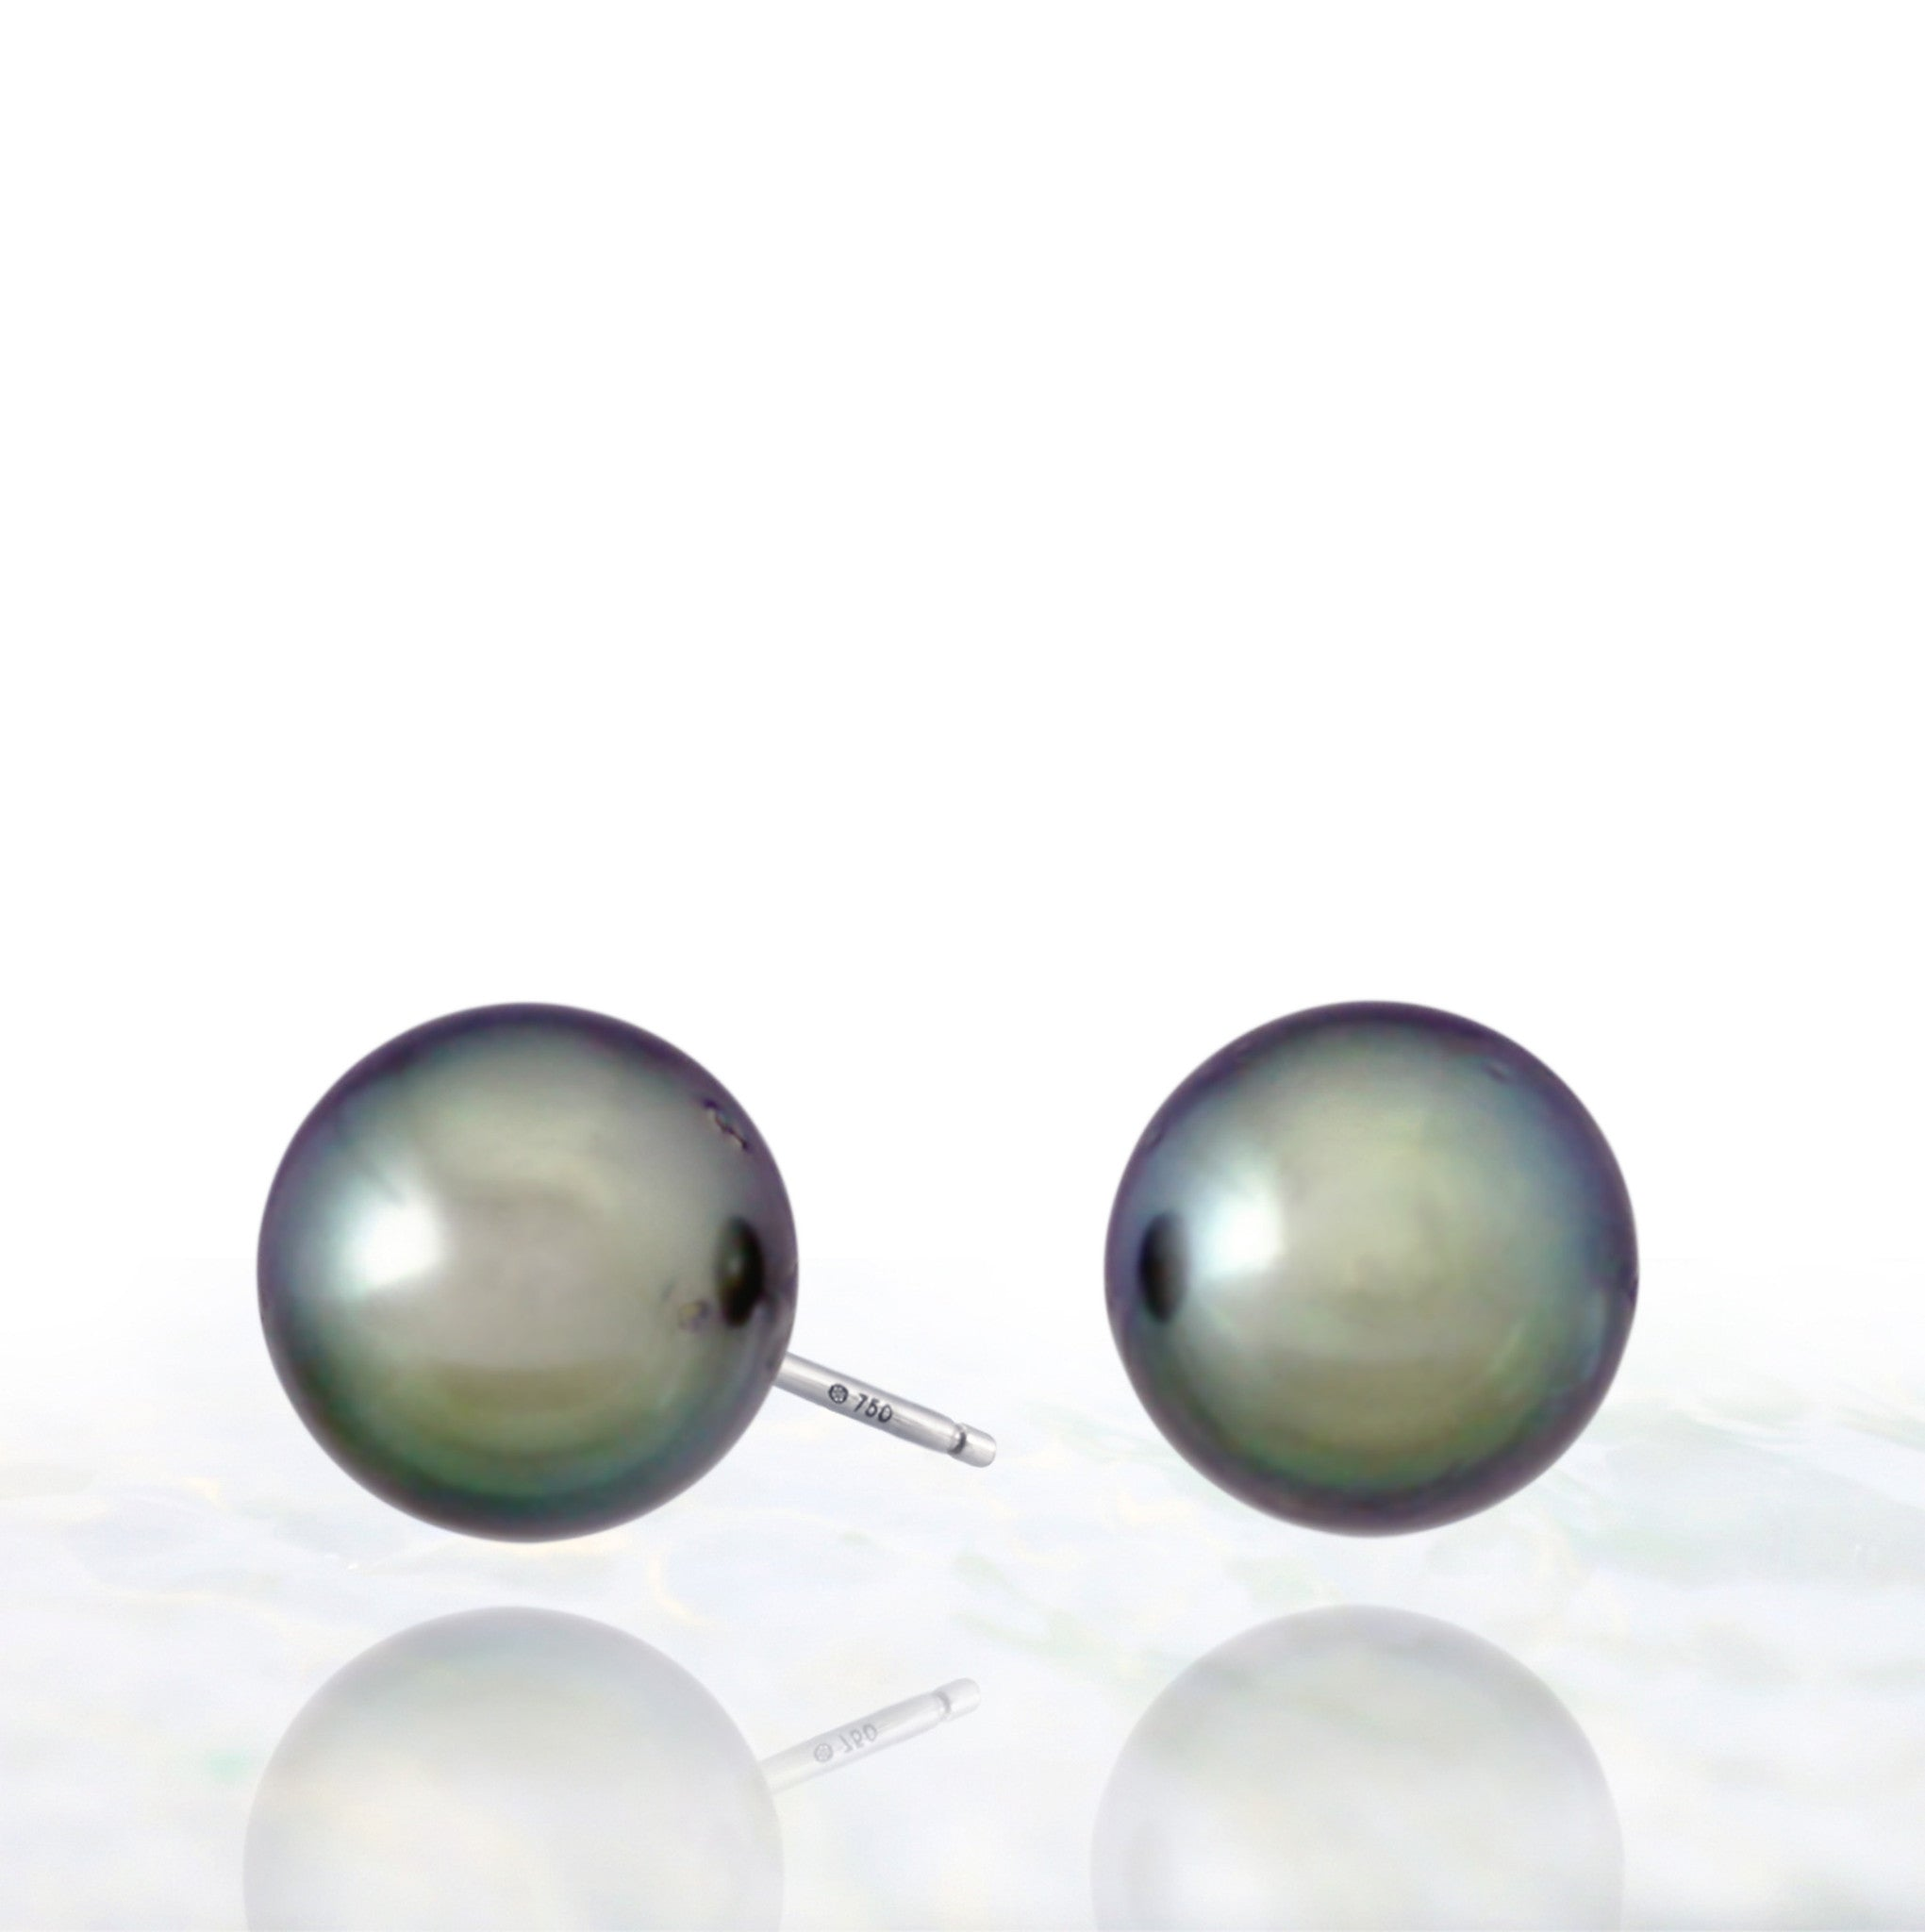 Tahitian pearl earrings - 18k white gold studs - EAWGPE00146